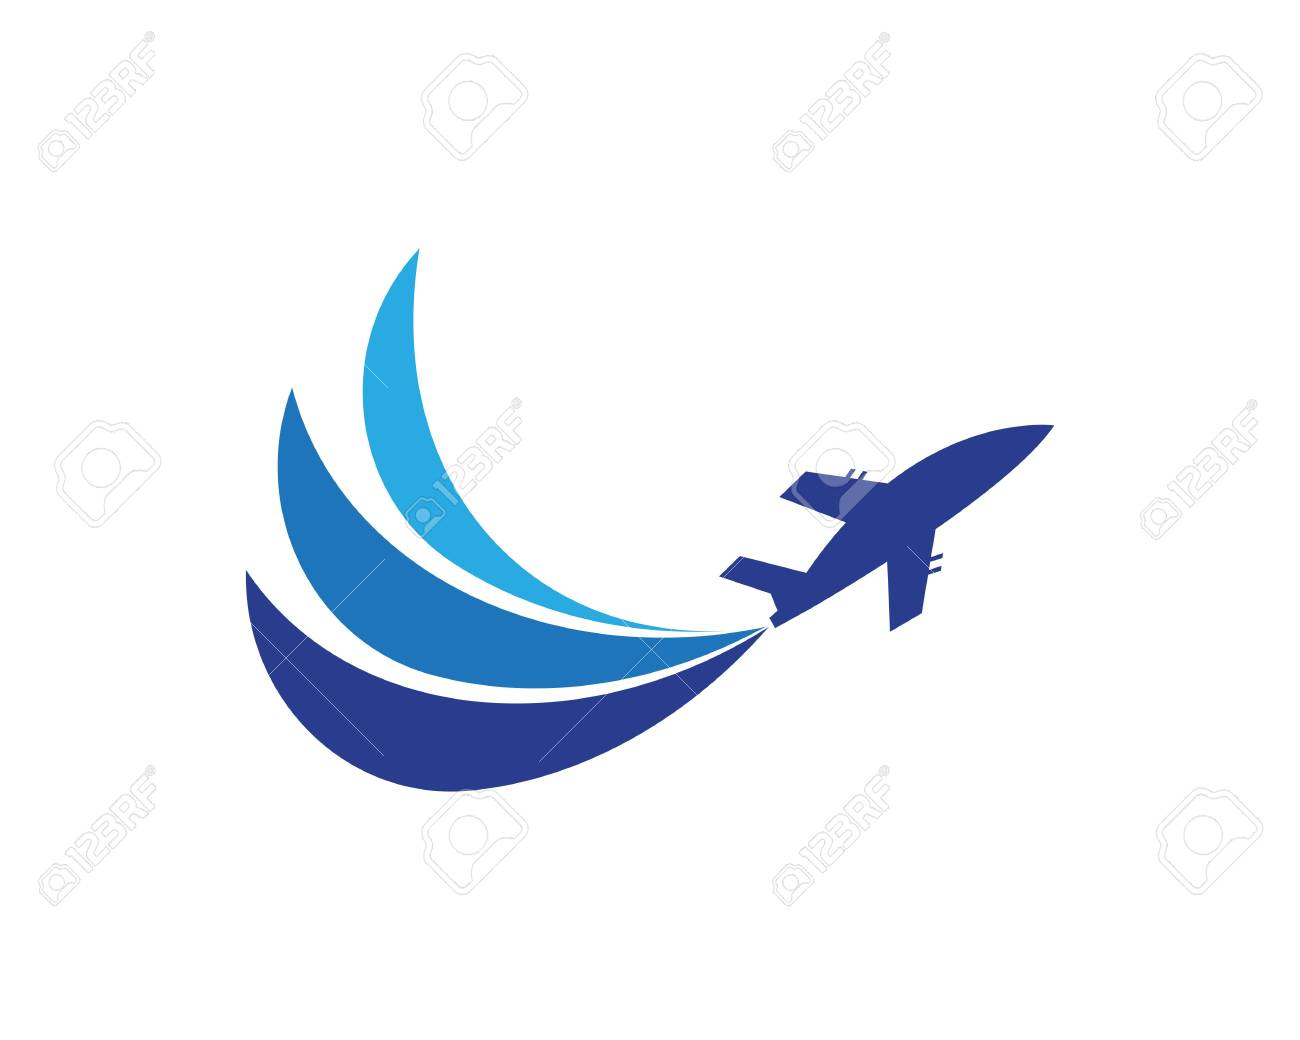 Business Travel Logo Template Royalty Free Cliparts Vectors And Stock Illustration Image 112921436